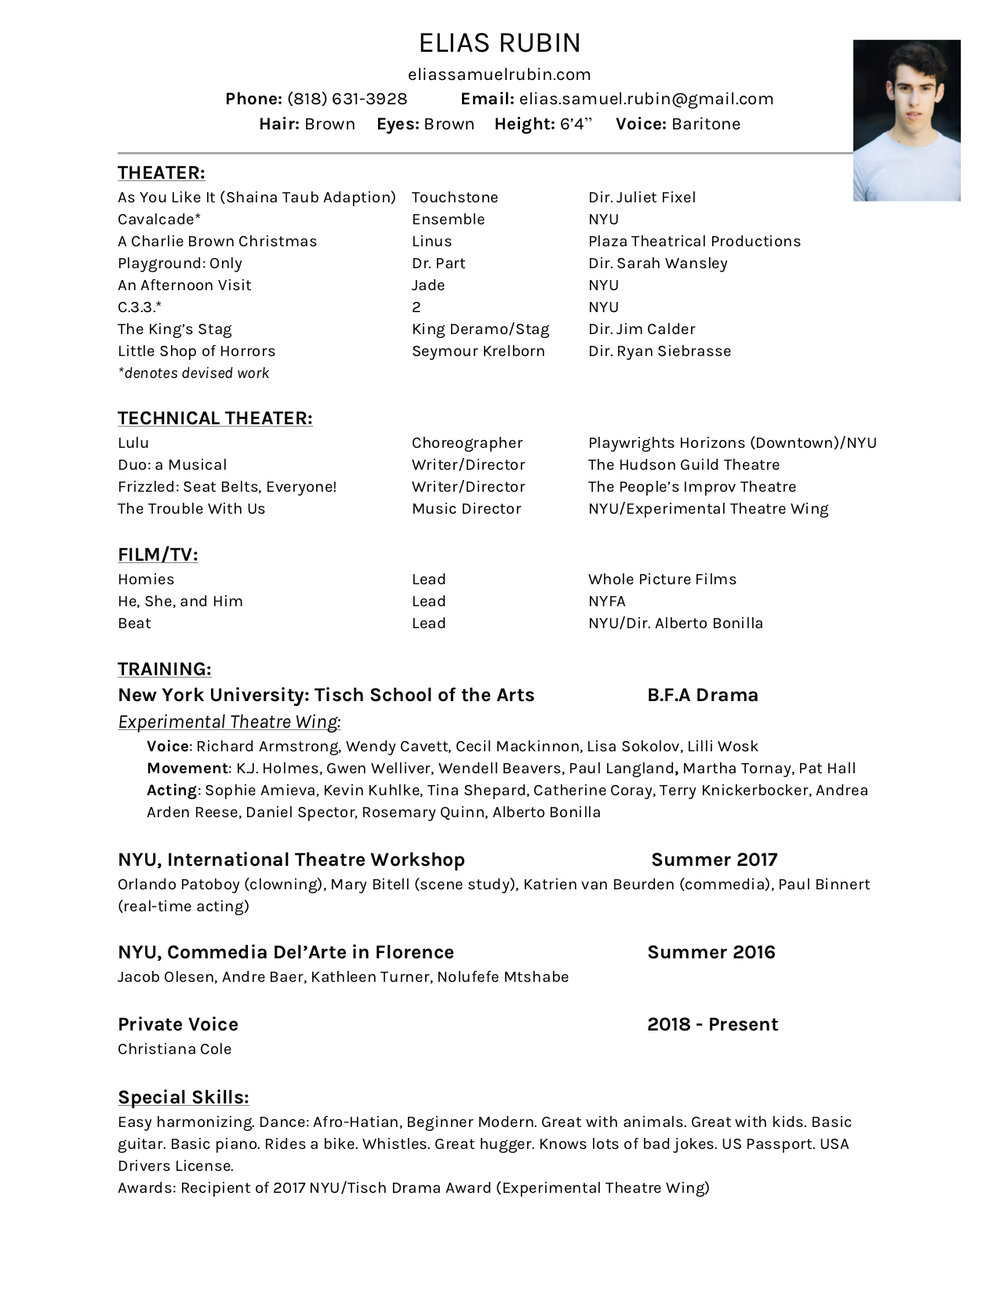 Click here to download my resume!